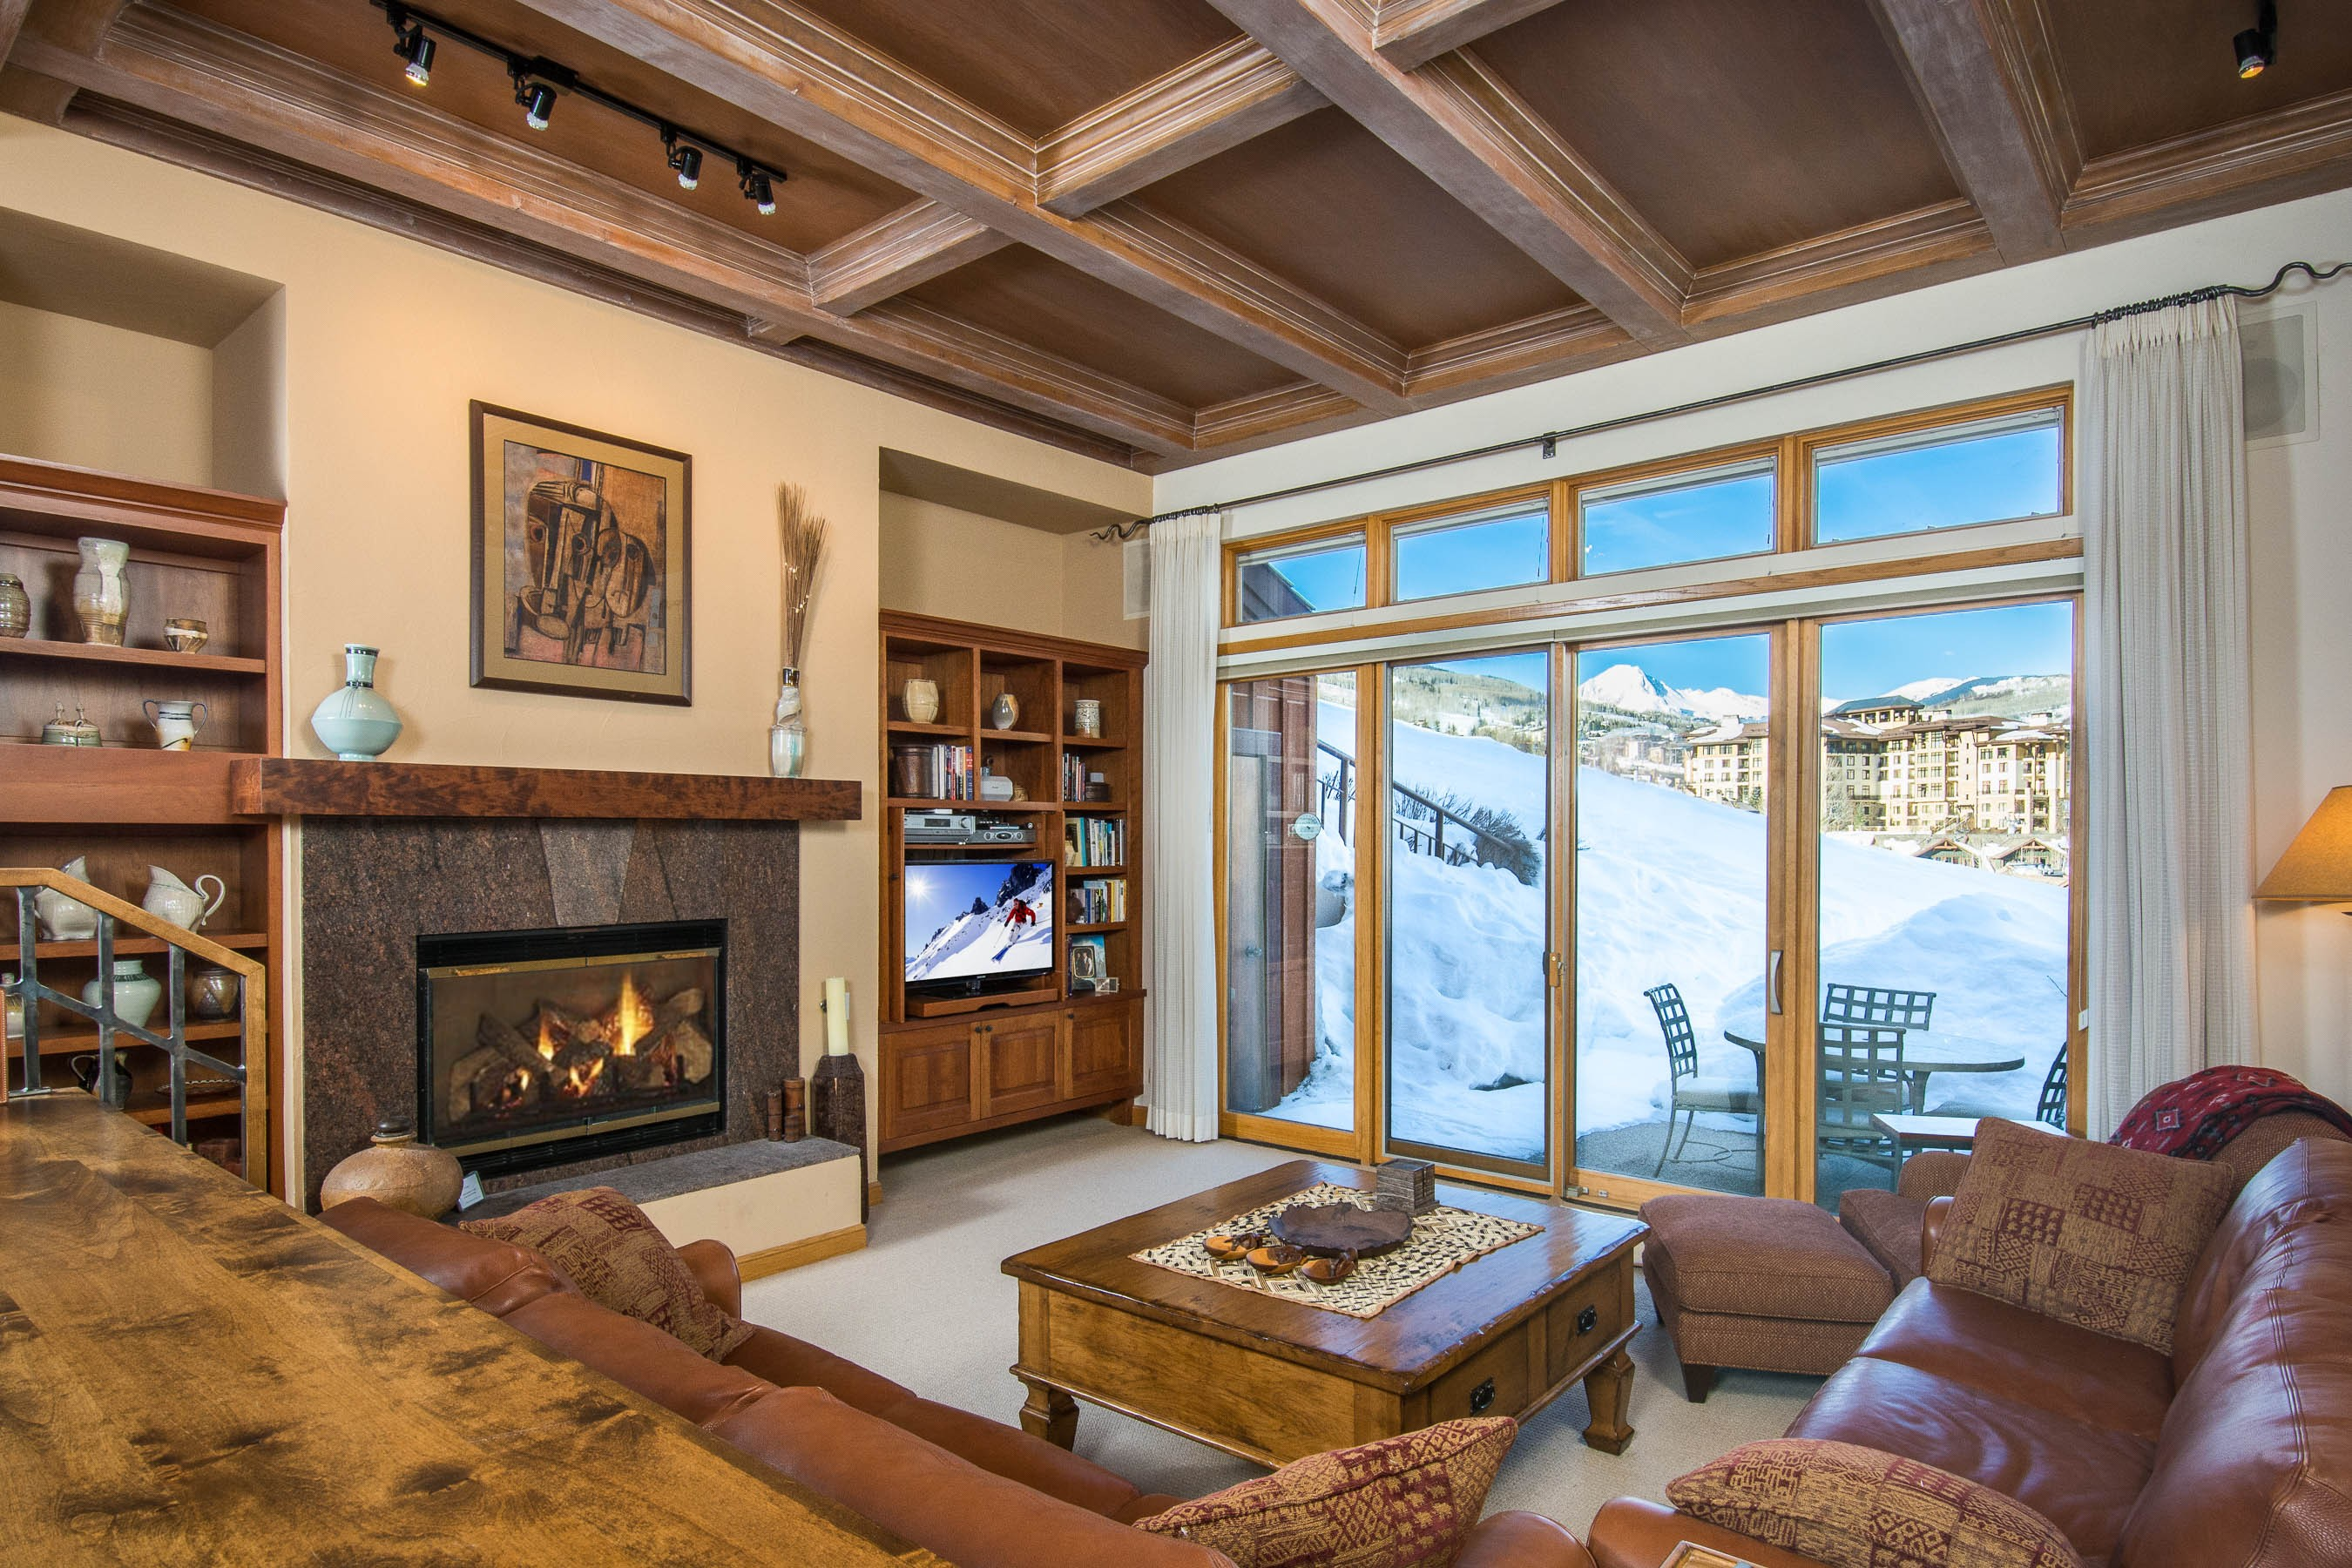 共管物業 為 出售 在 Spacious 3 Bedroom Ski Retreat 770 Ridge Road Unit 5 Snowmass Village, 科羅拉多州, 81615 美國